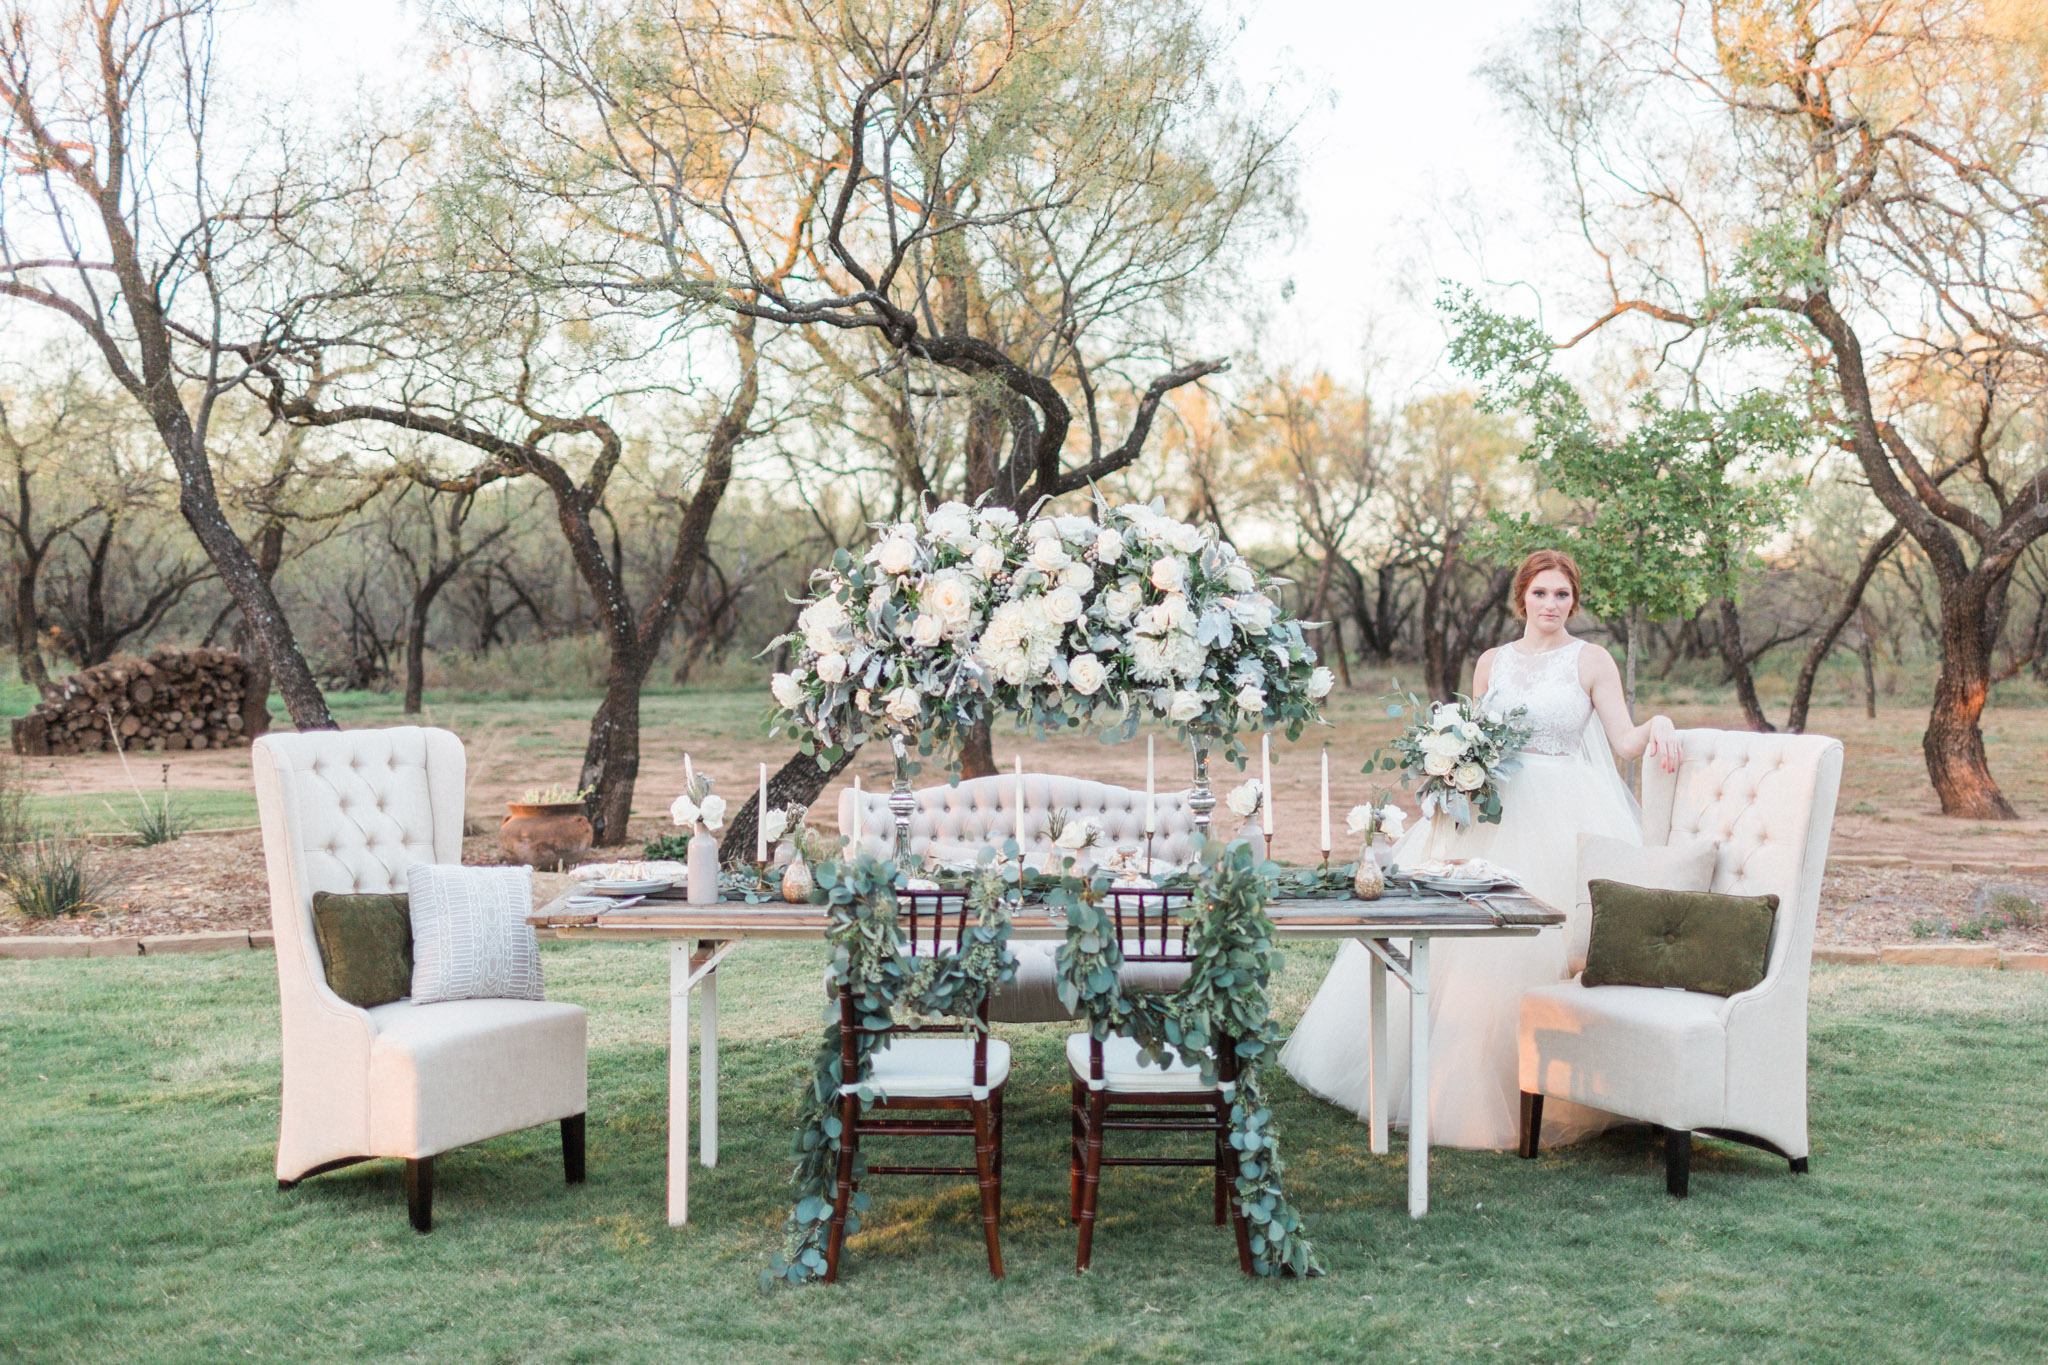 North Texas Styled Shoot Wedding Photos - Timeless Photography